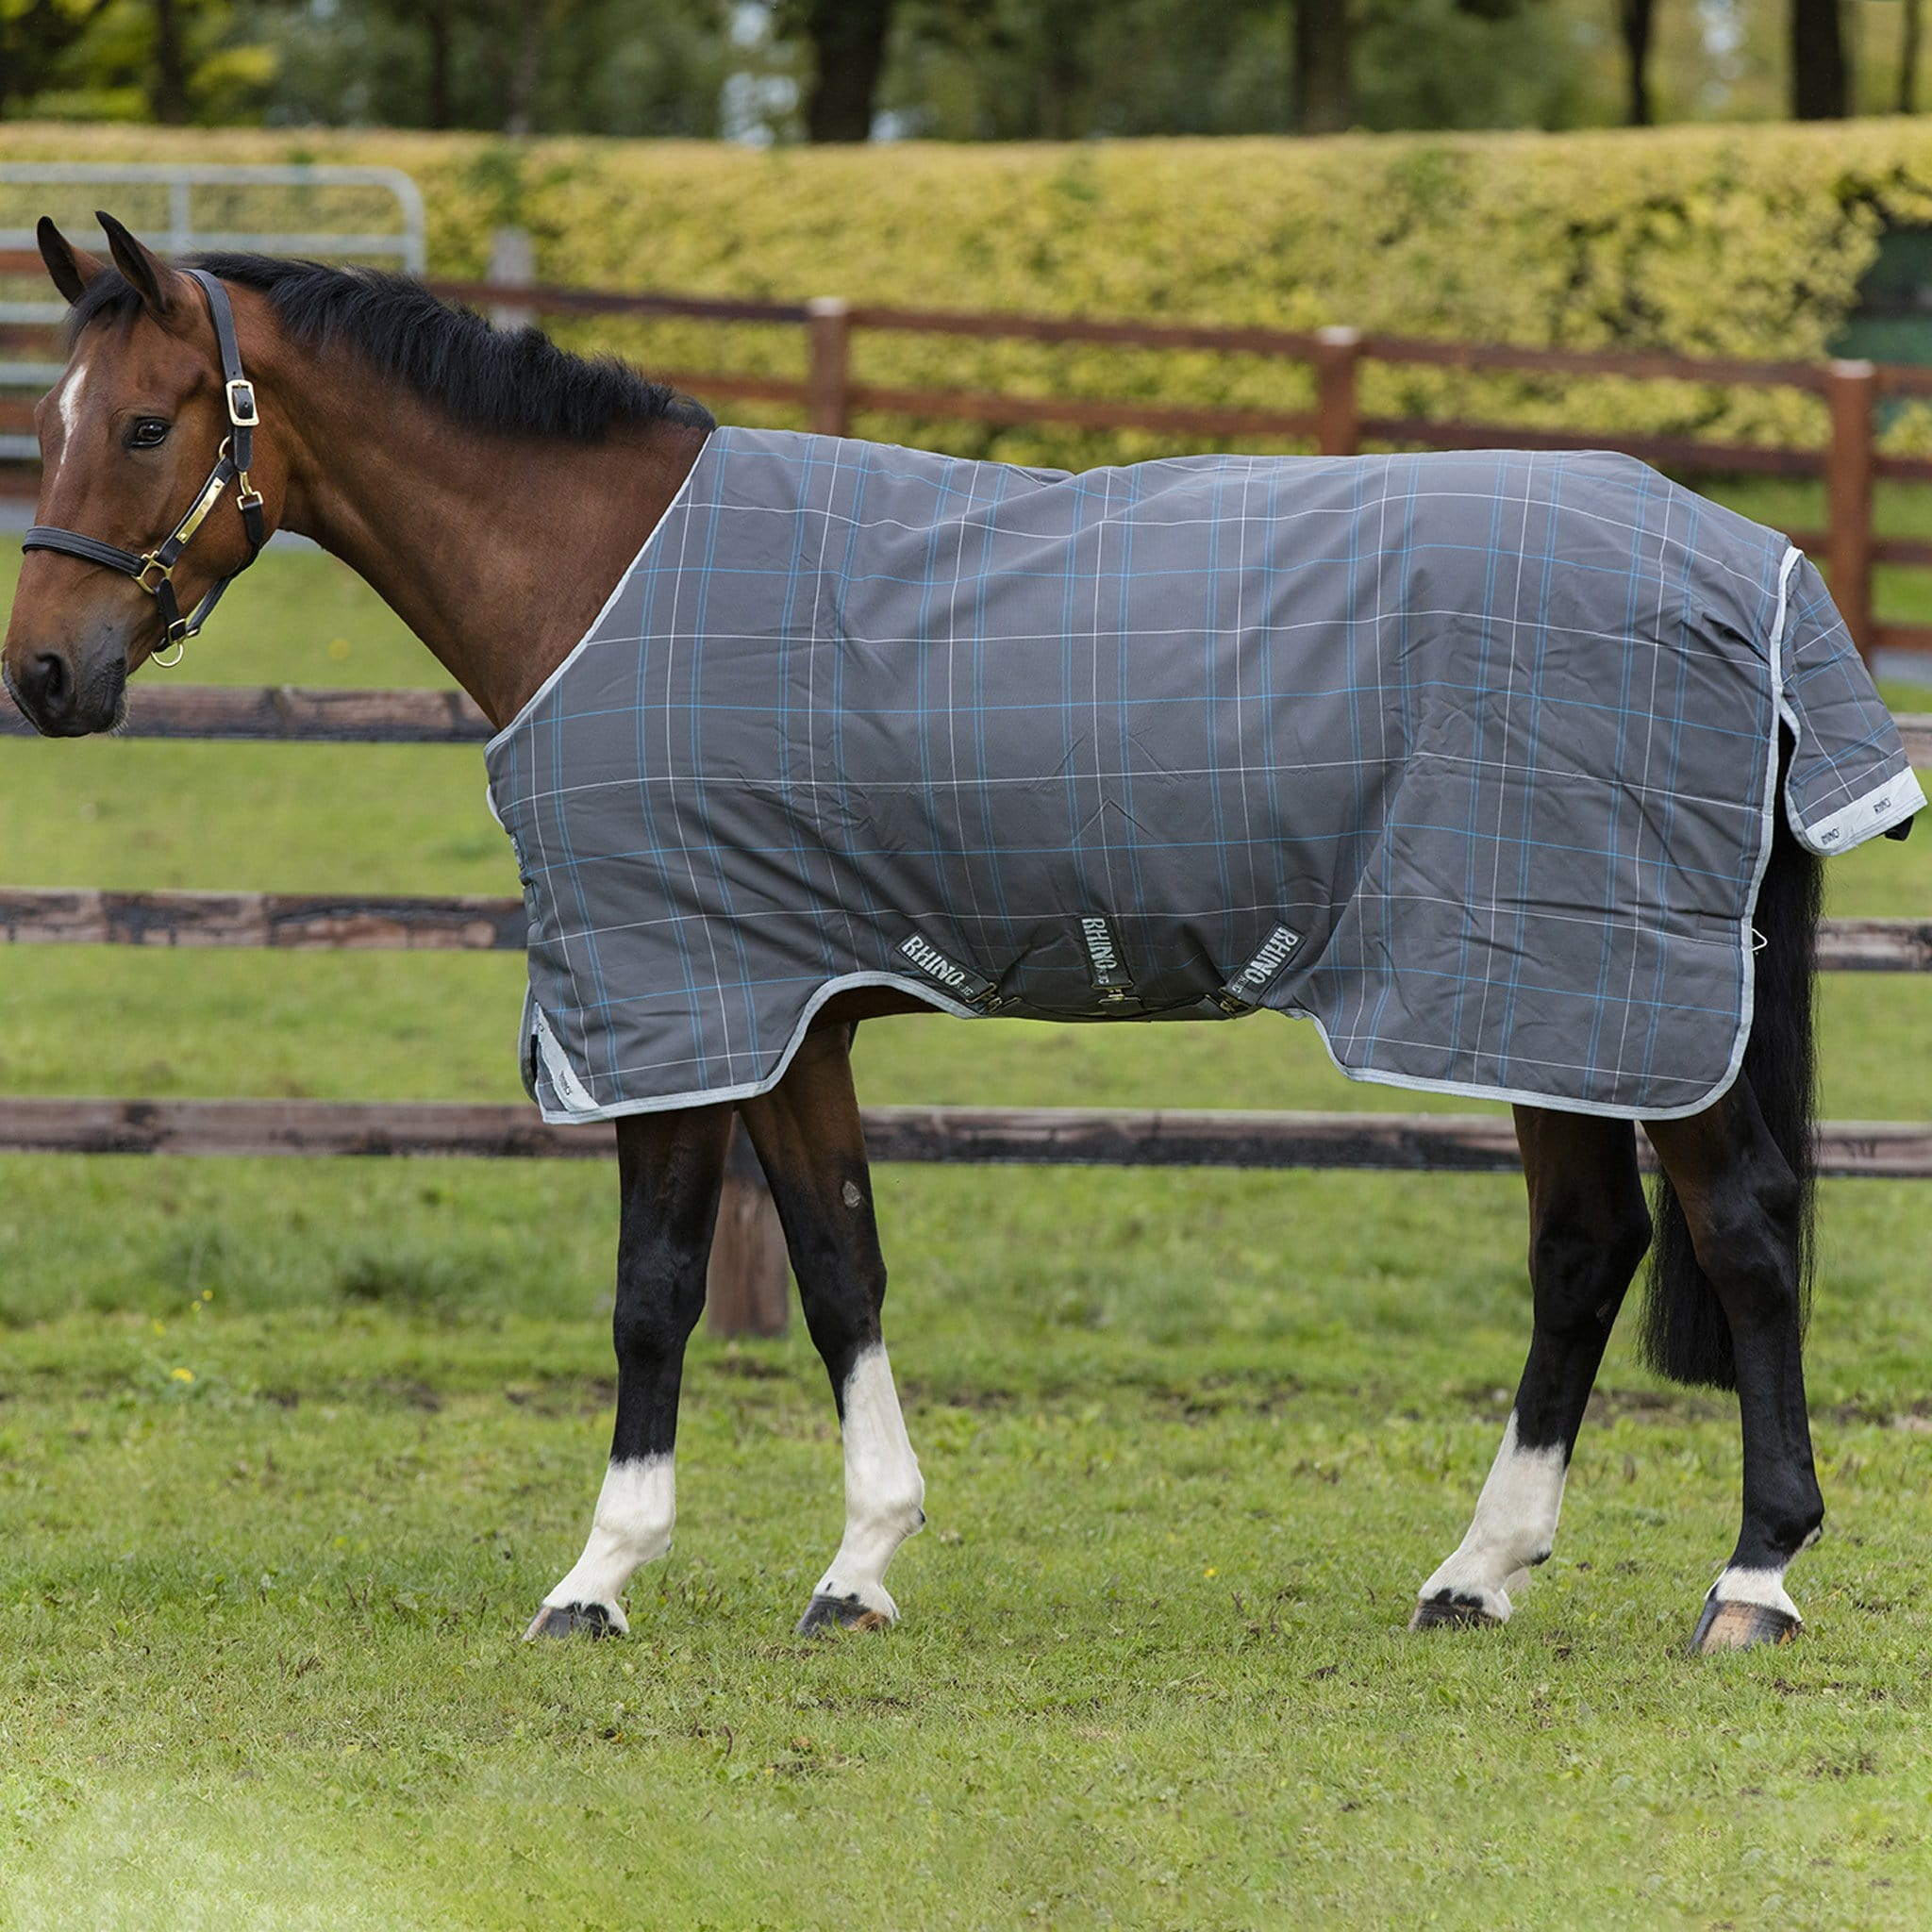 Rhino Original with Vari-Layer Heavyweight 450g Standard Neck Turnout Rug AABV84.